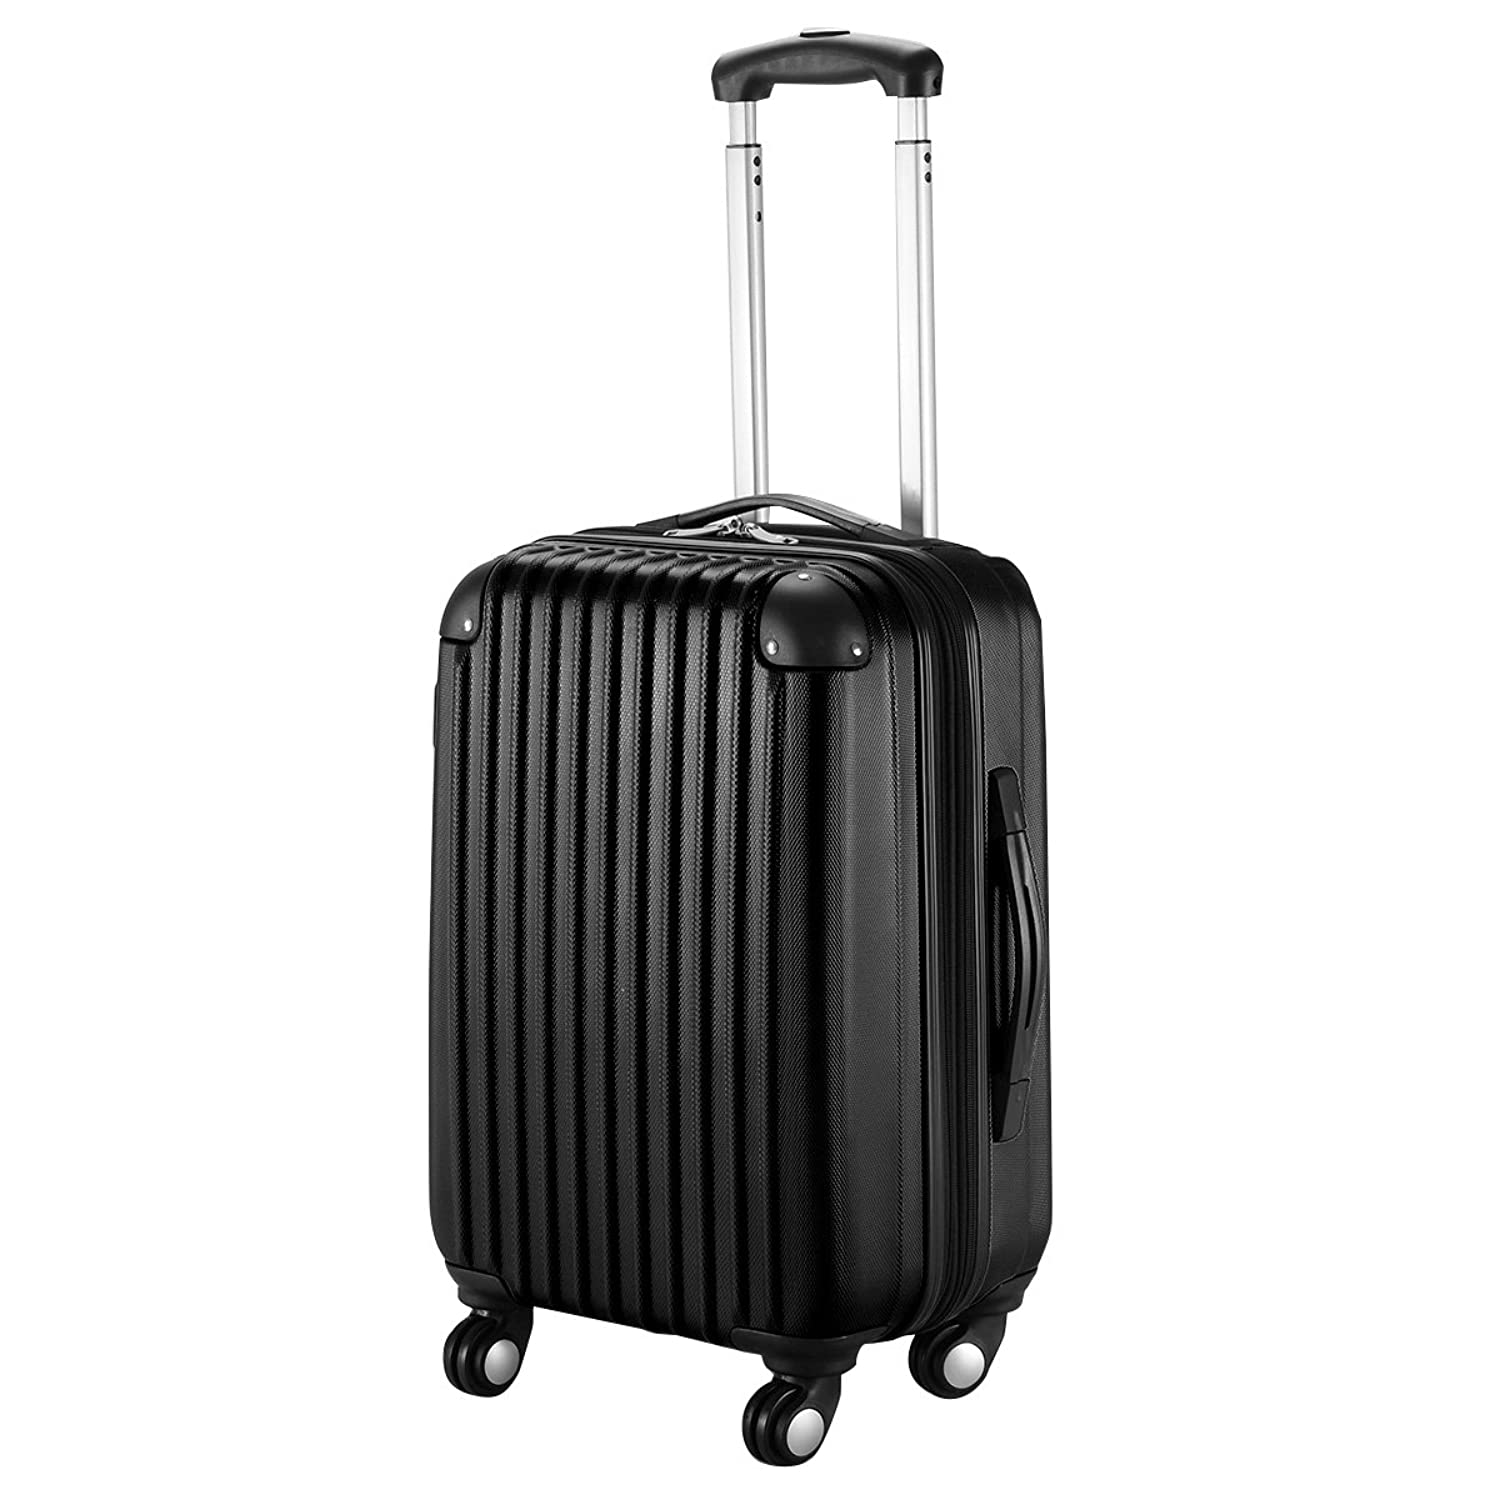 Amazon Best Sellers: Best Carry-On Luggage